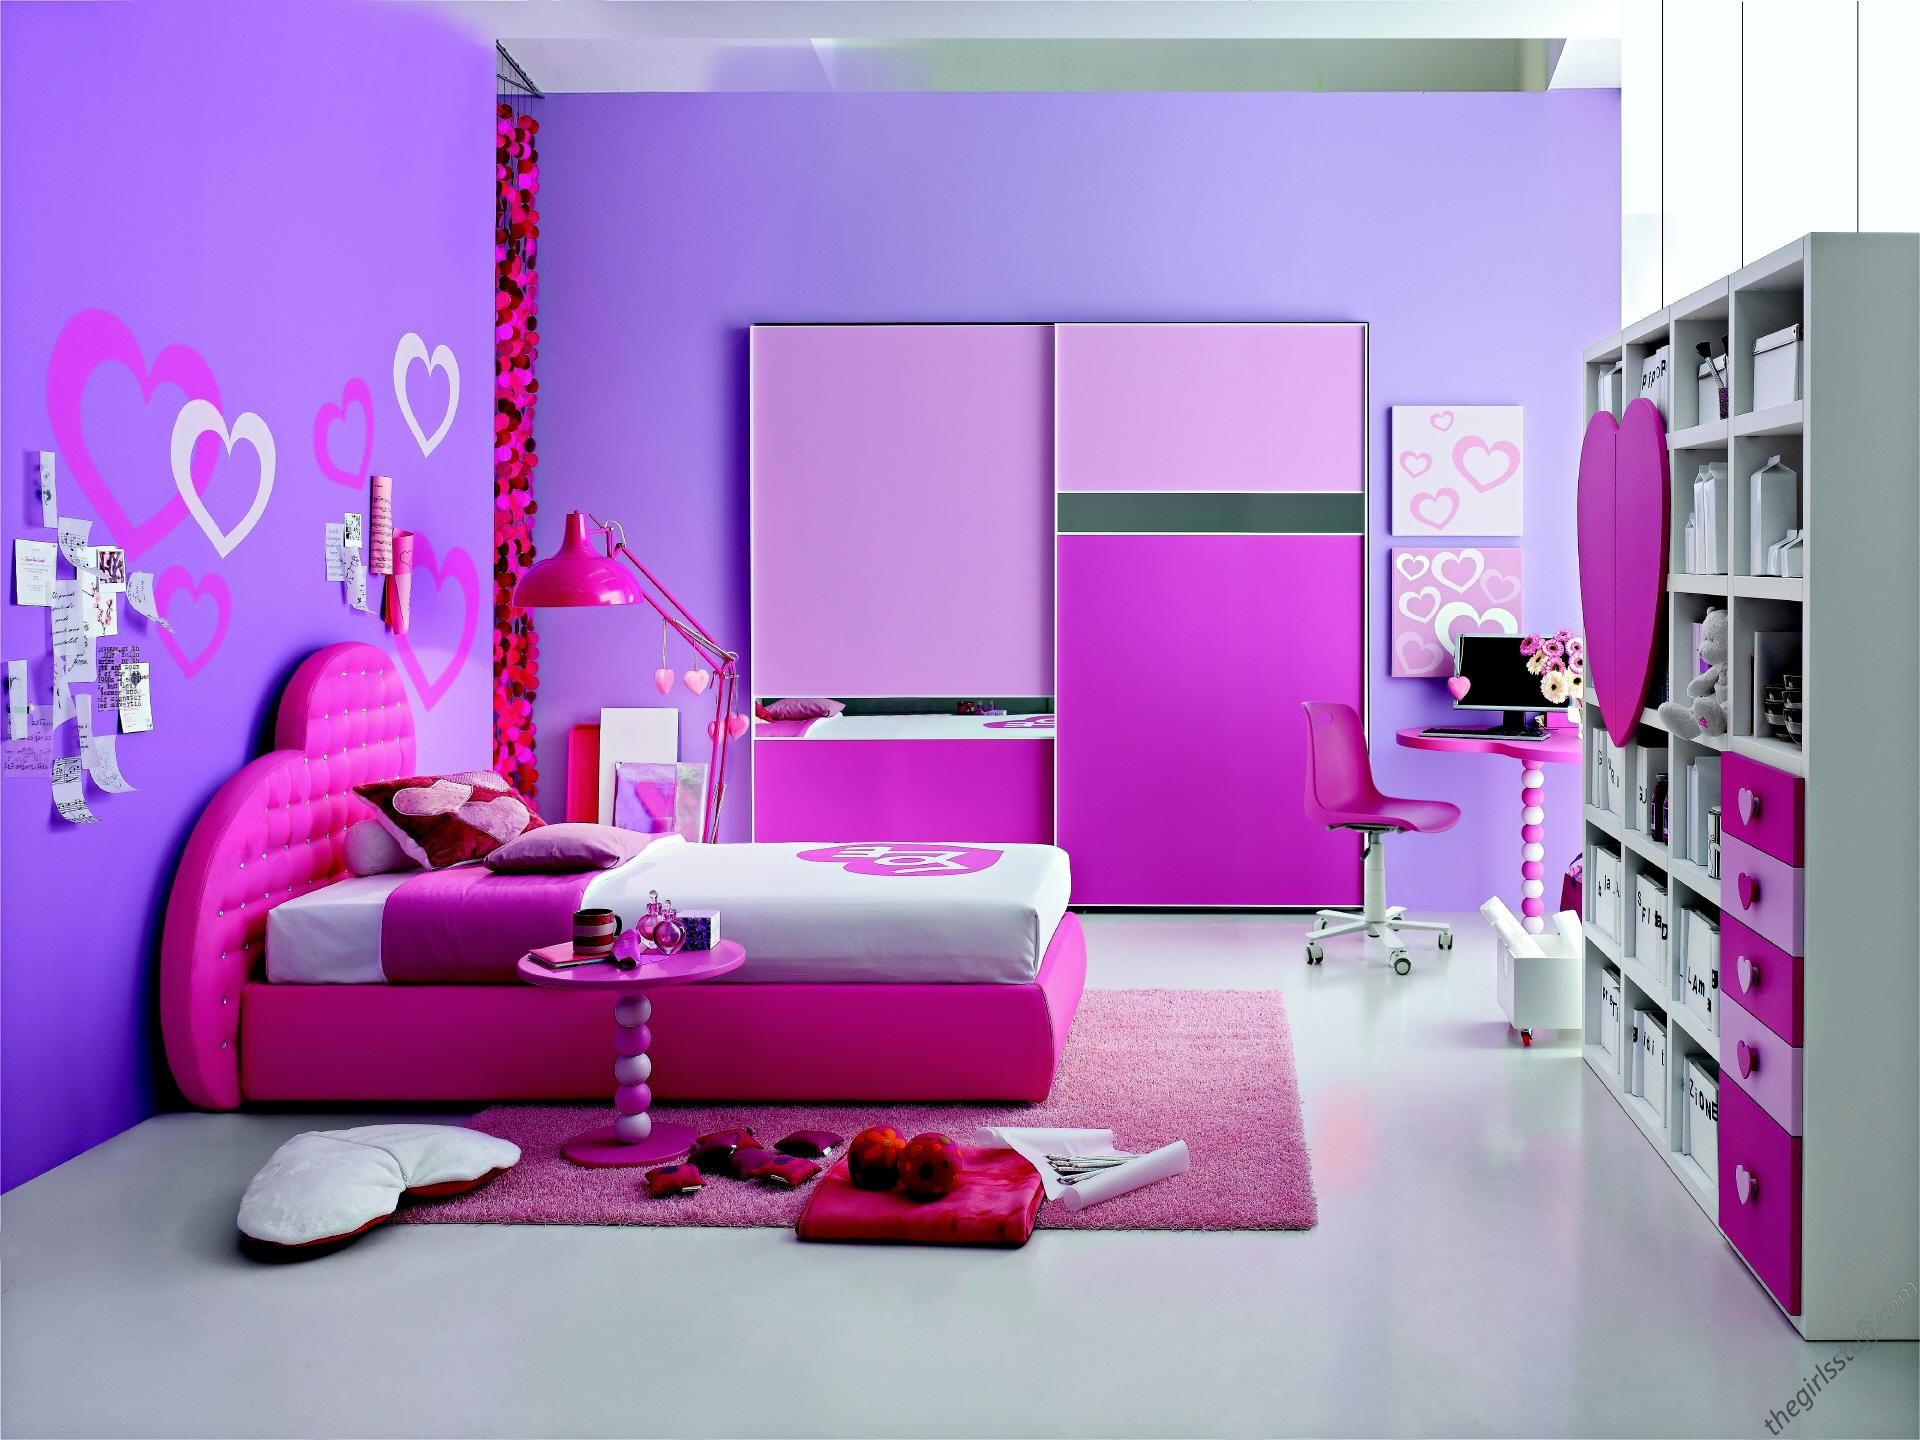 Bedroom Design for Girls with Cool Purple Wall using Windows and ...